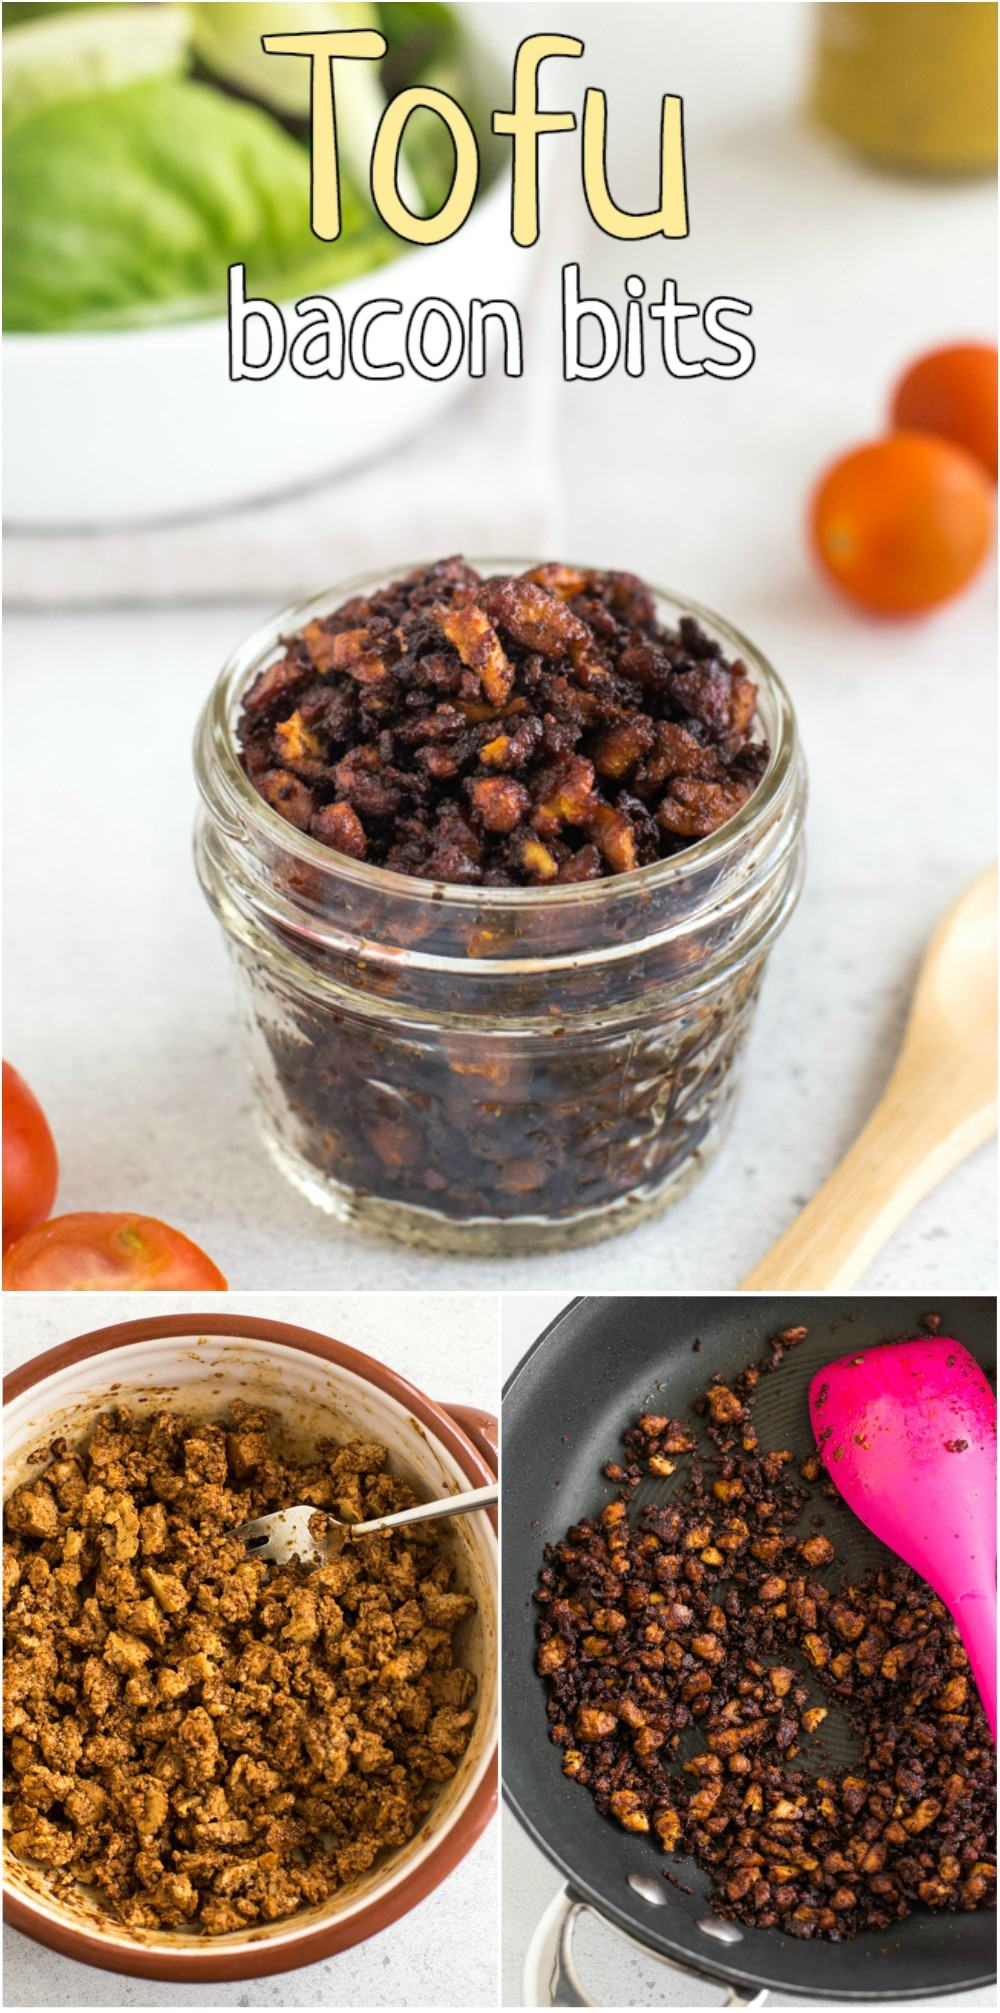 Tofu bacon bits - homemade vegan bacon bits made with a sweet-salty-smoky-spicy marinade! Perfect for salads, soup, pasta, or just eaten by the handful! #tofubacon #veganbacon #vegetarianbacon #baconbits